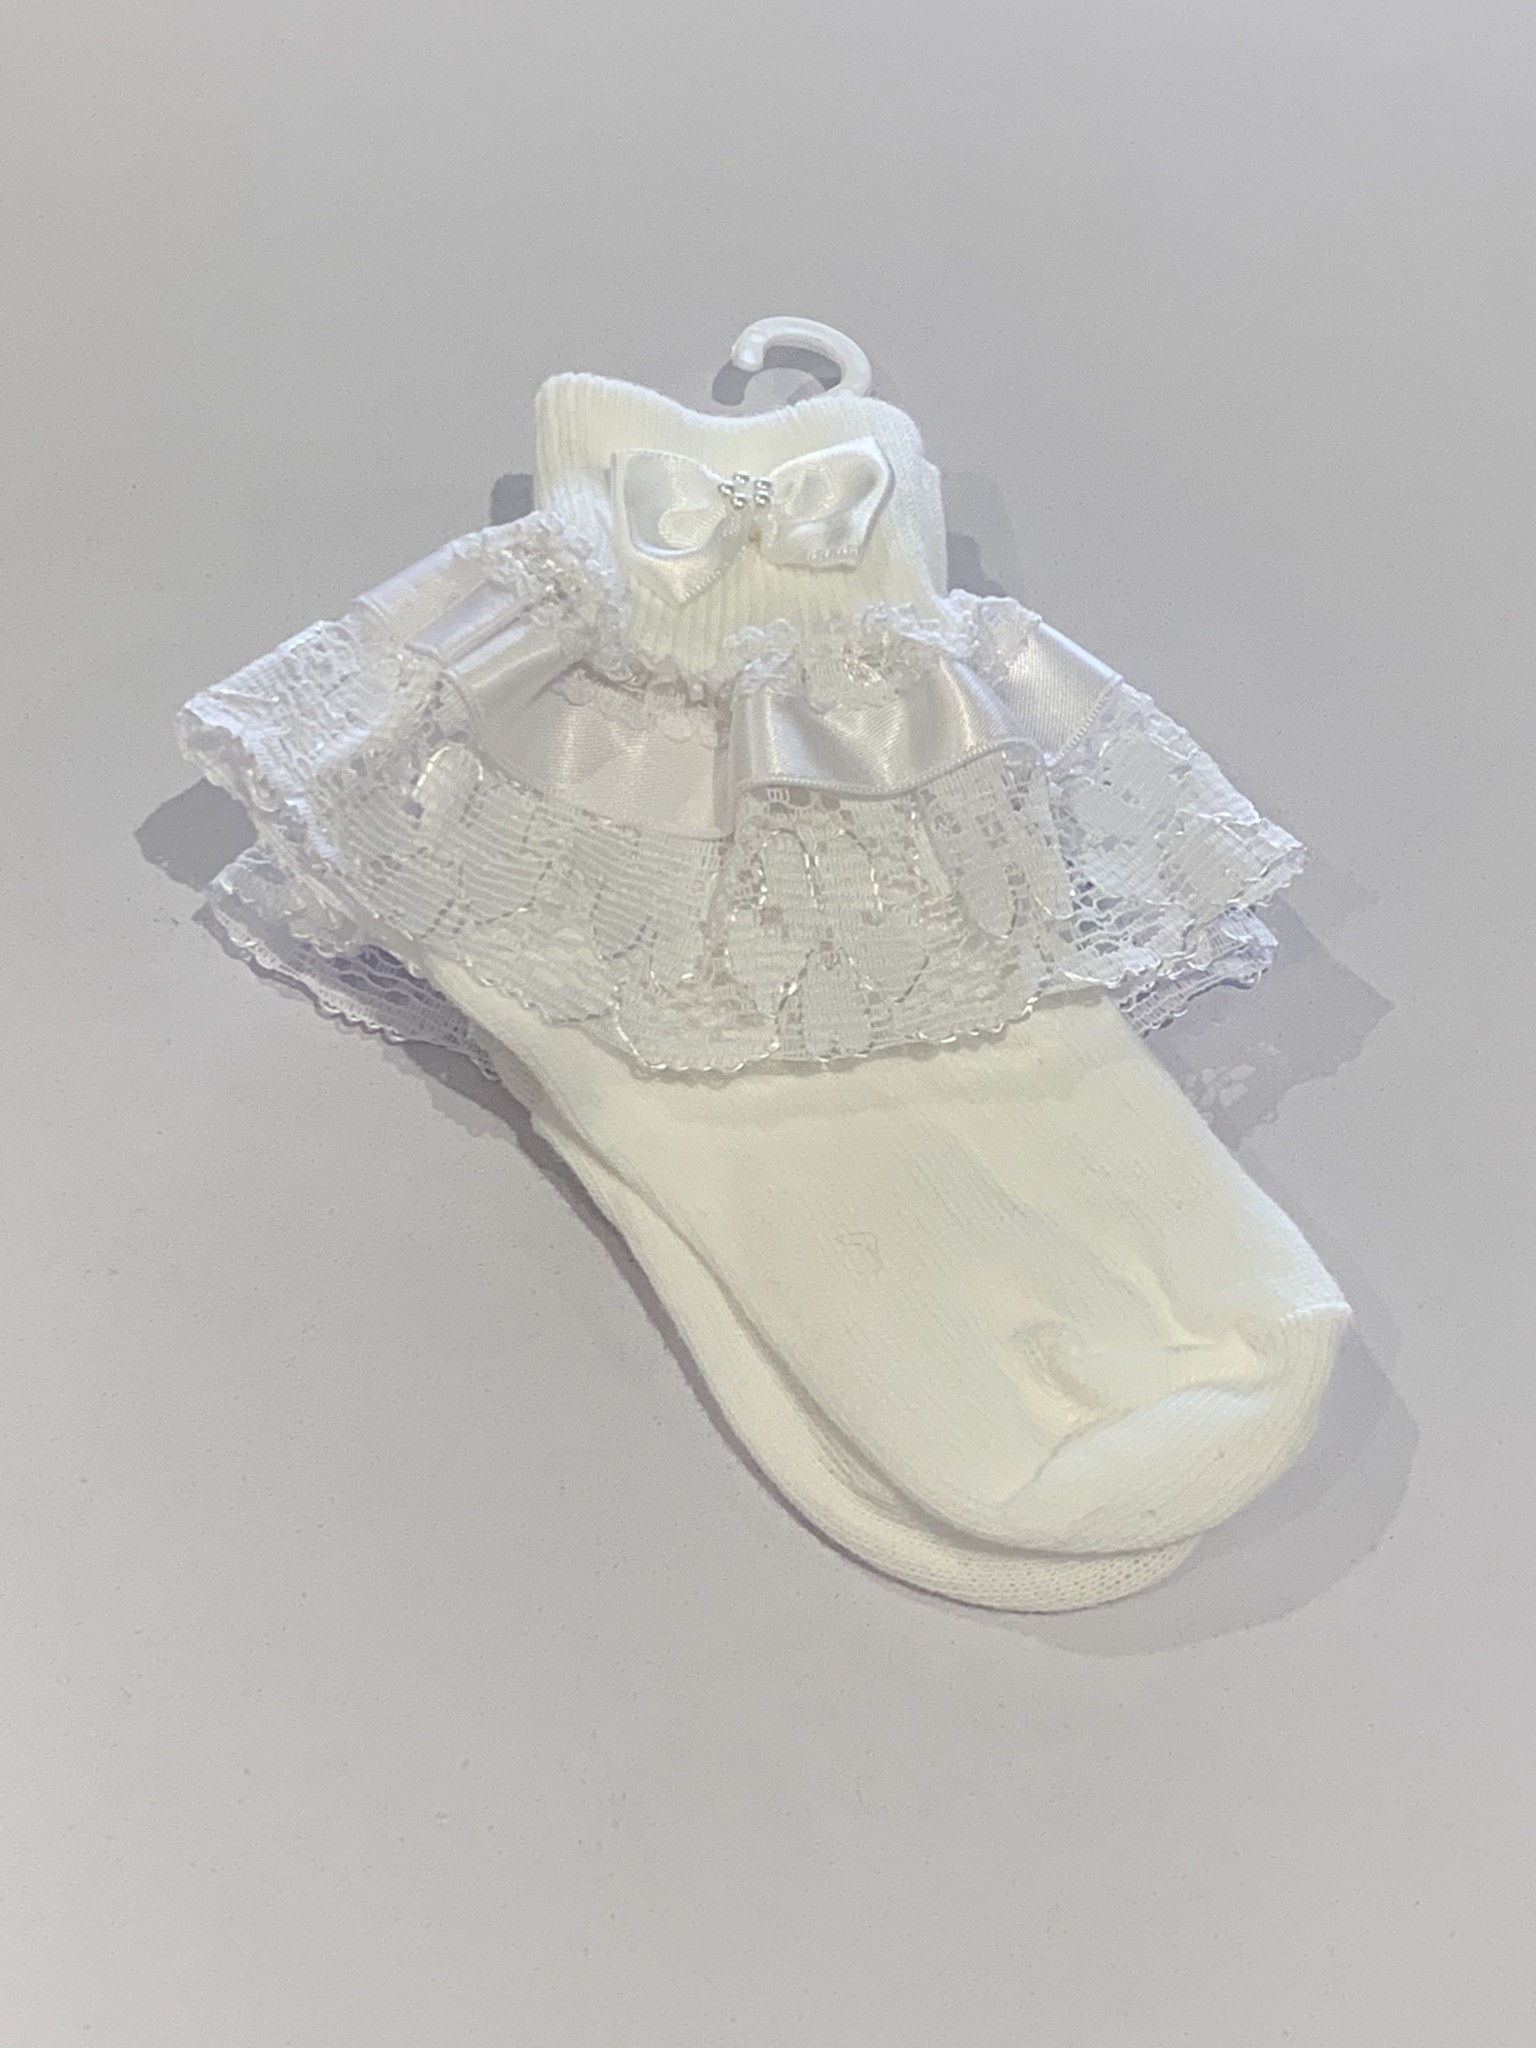 The Frilly Sock co white ankle frilly Socks with bow detail daisy